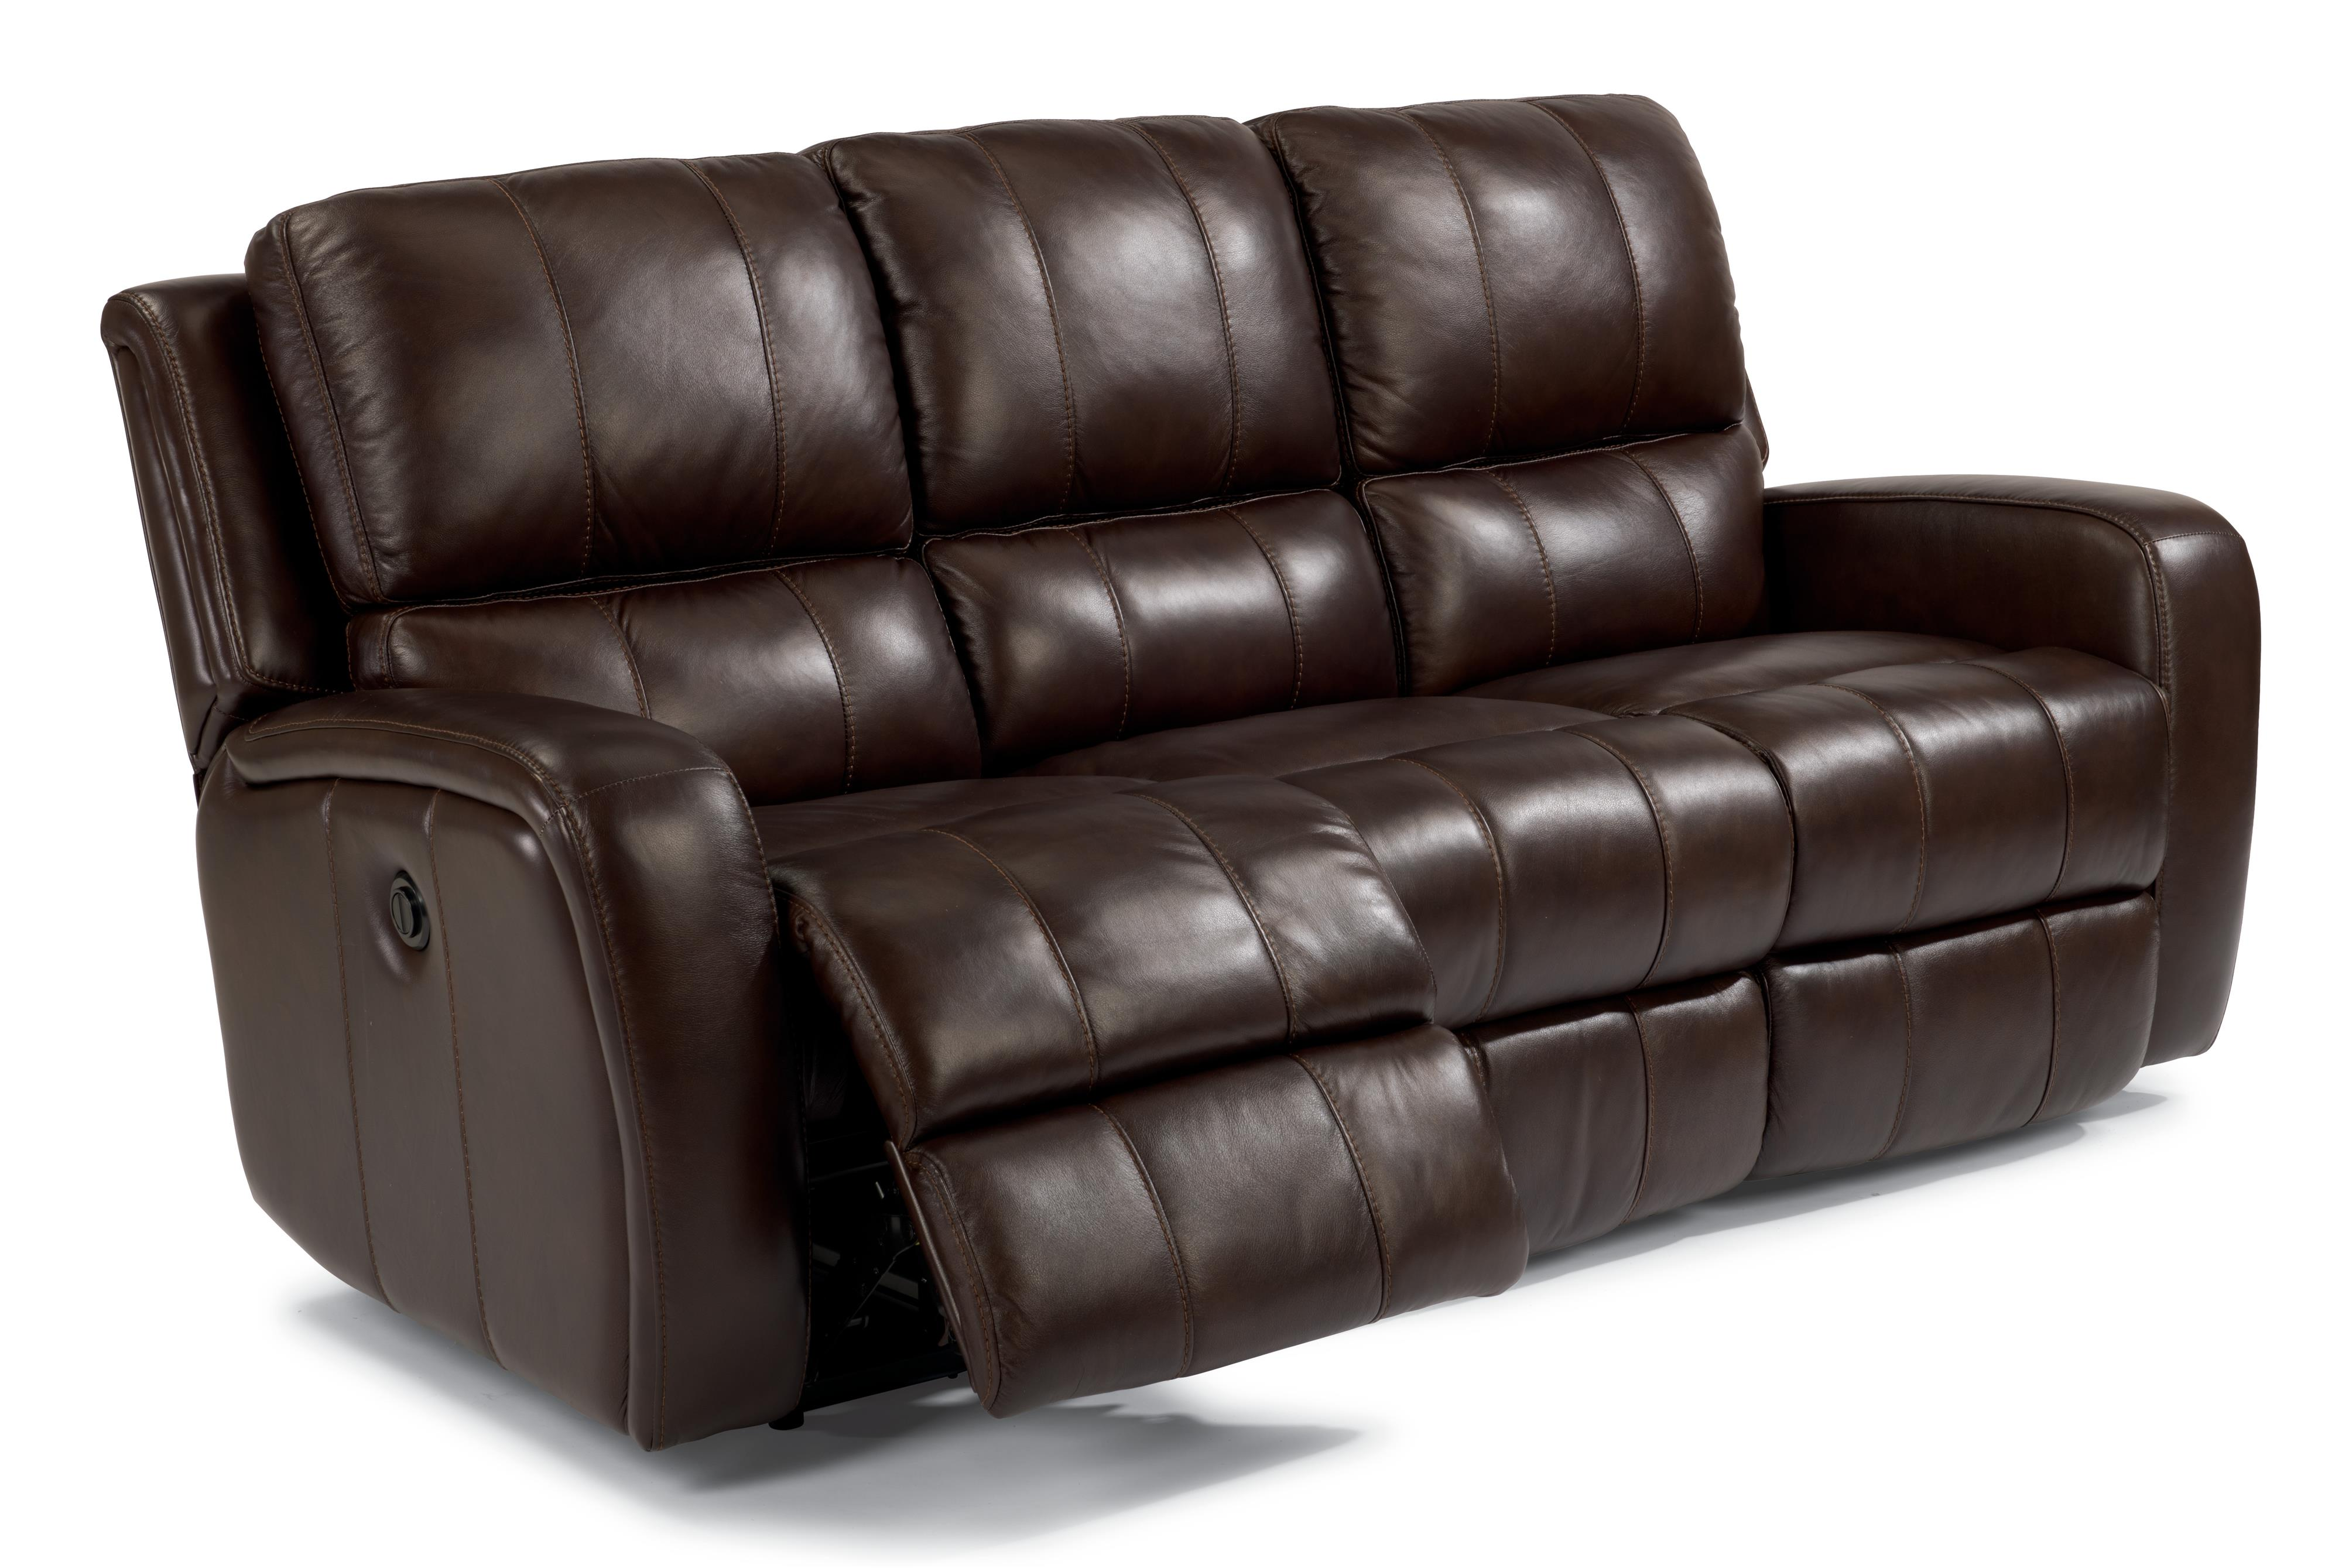 Flexsteel latitudes hammond casual double reclining sofa for Sectional sofa with double recliner